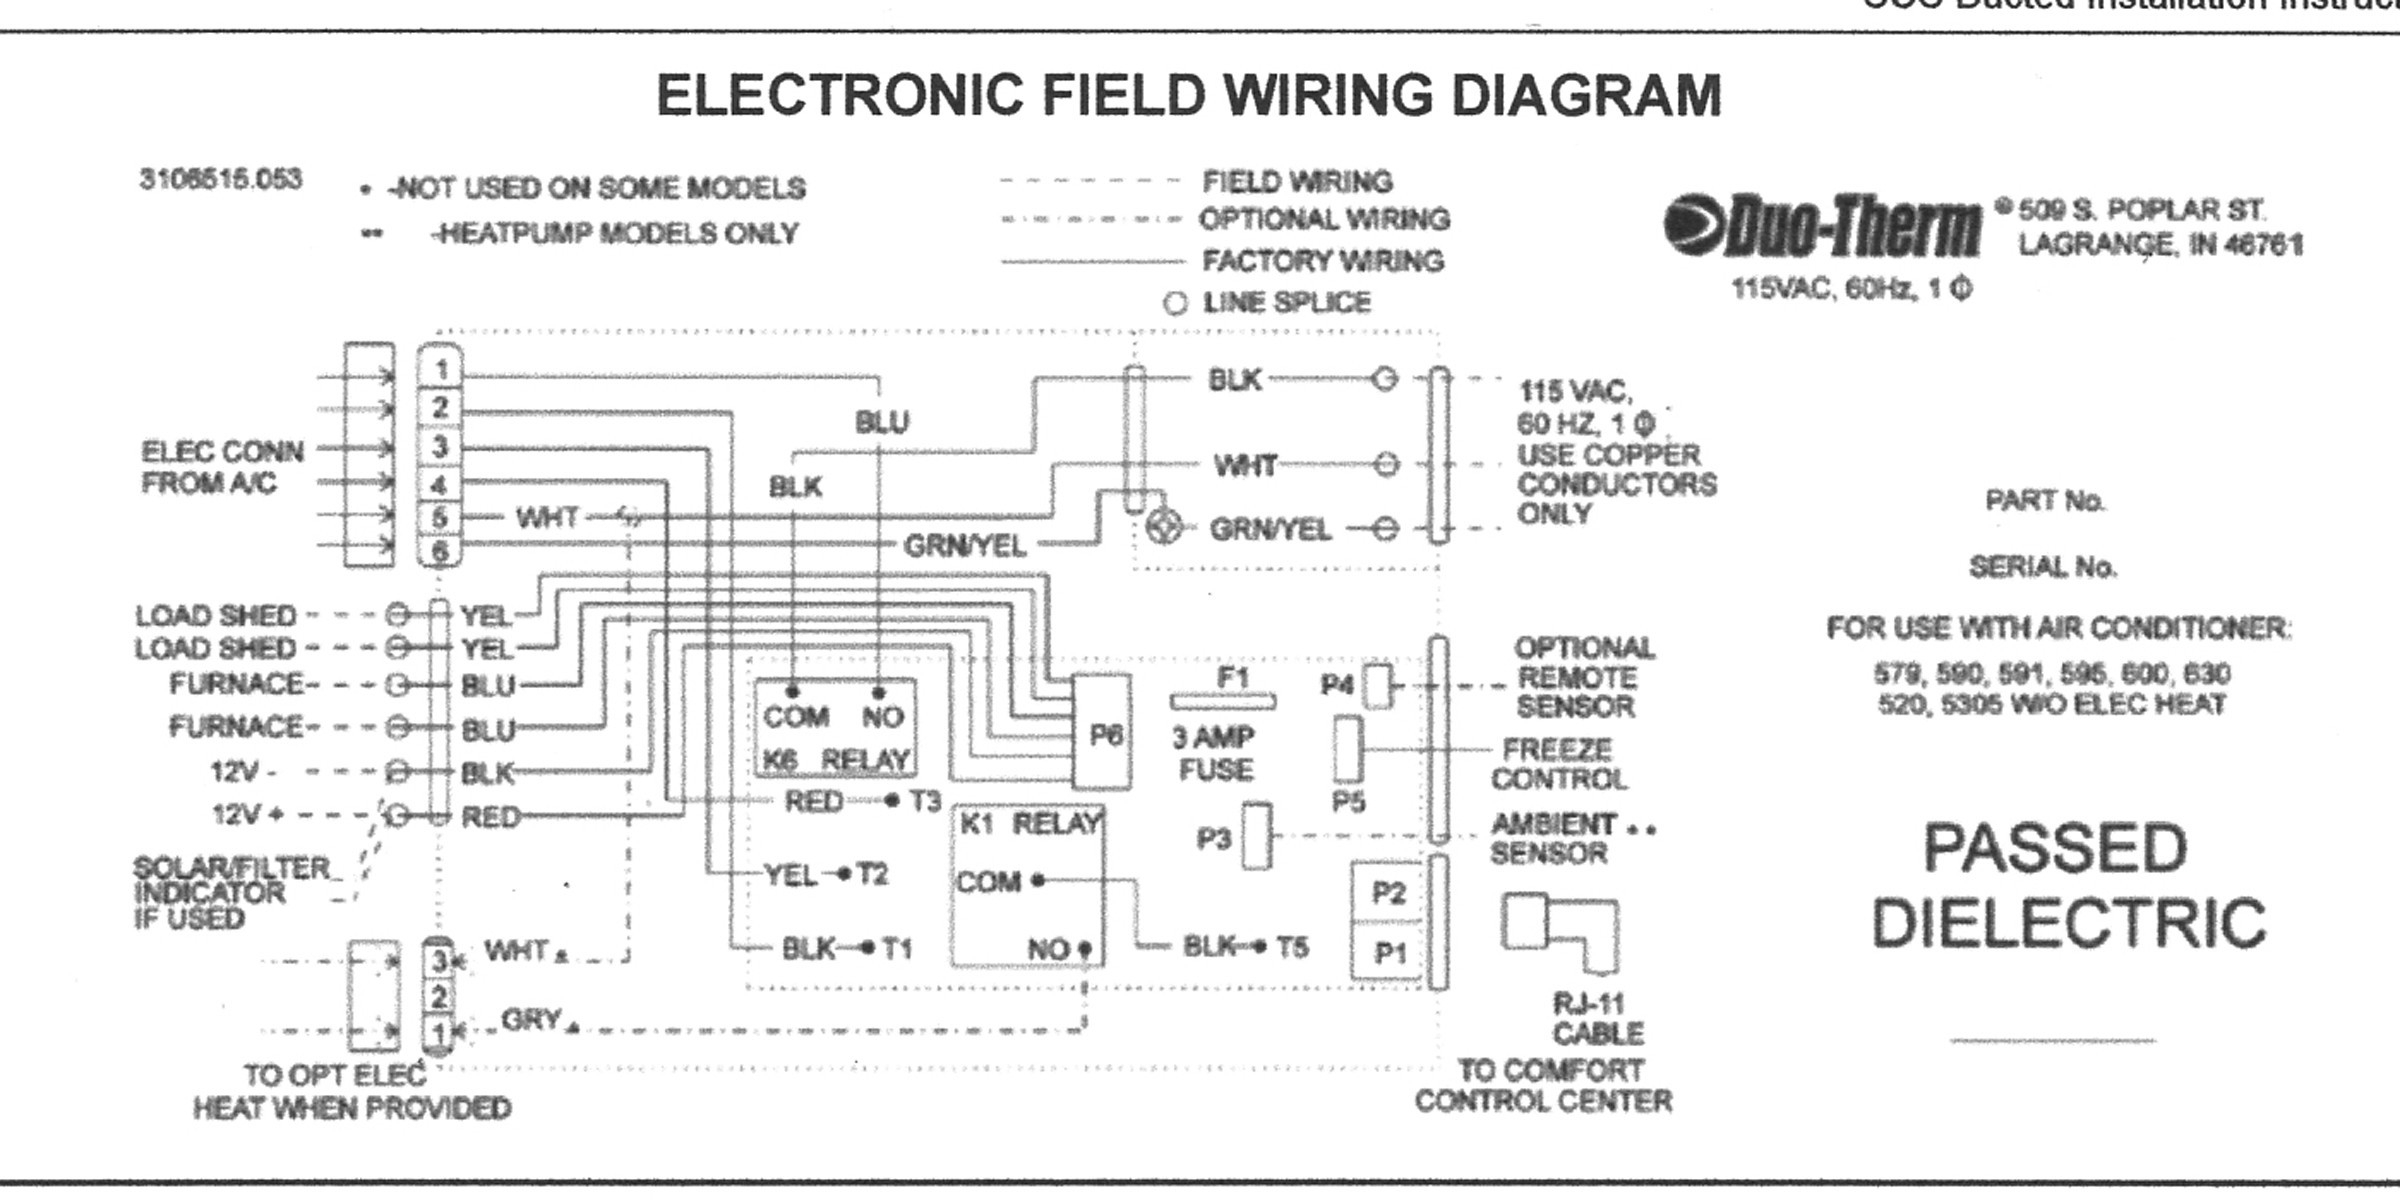 Dometic Thermostat Wiring Diagram on dometic duo therm parts brake down, duo therm rv air conditioner wiring diagram, dometic refrigerator wiring diagram, dometic rv air conditioner manual, dometic ac wiring diagram, dometic fridge wire schematic, norcold refrigerator wiring diagram, dometic a c controller wired, travel trailer refrigerator diagram, old furnace wiring diagram, dometic lcd wiring, hard start capacitor wiring diagram, dometic ac unit, ruud heat pump wiring diagram, rambler furnace diagram, furnace blower wiring diagram, dometic rv refrigerator schematic, basic furnace wiring diagram, dometic 3313192 thermostat replacement, ruud electrical diagram,